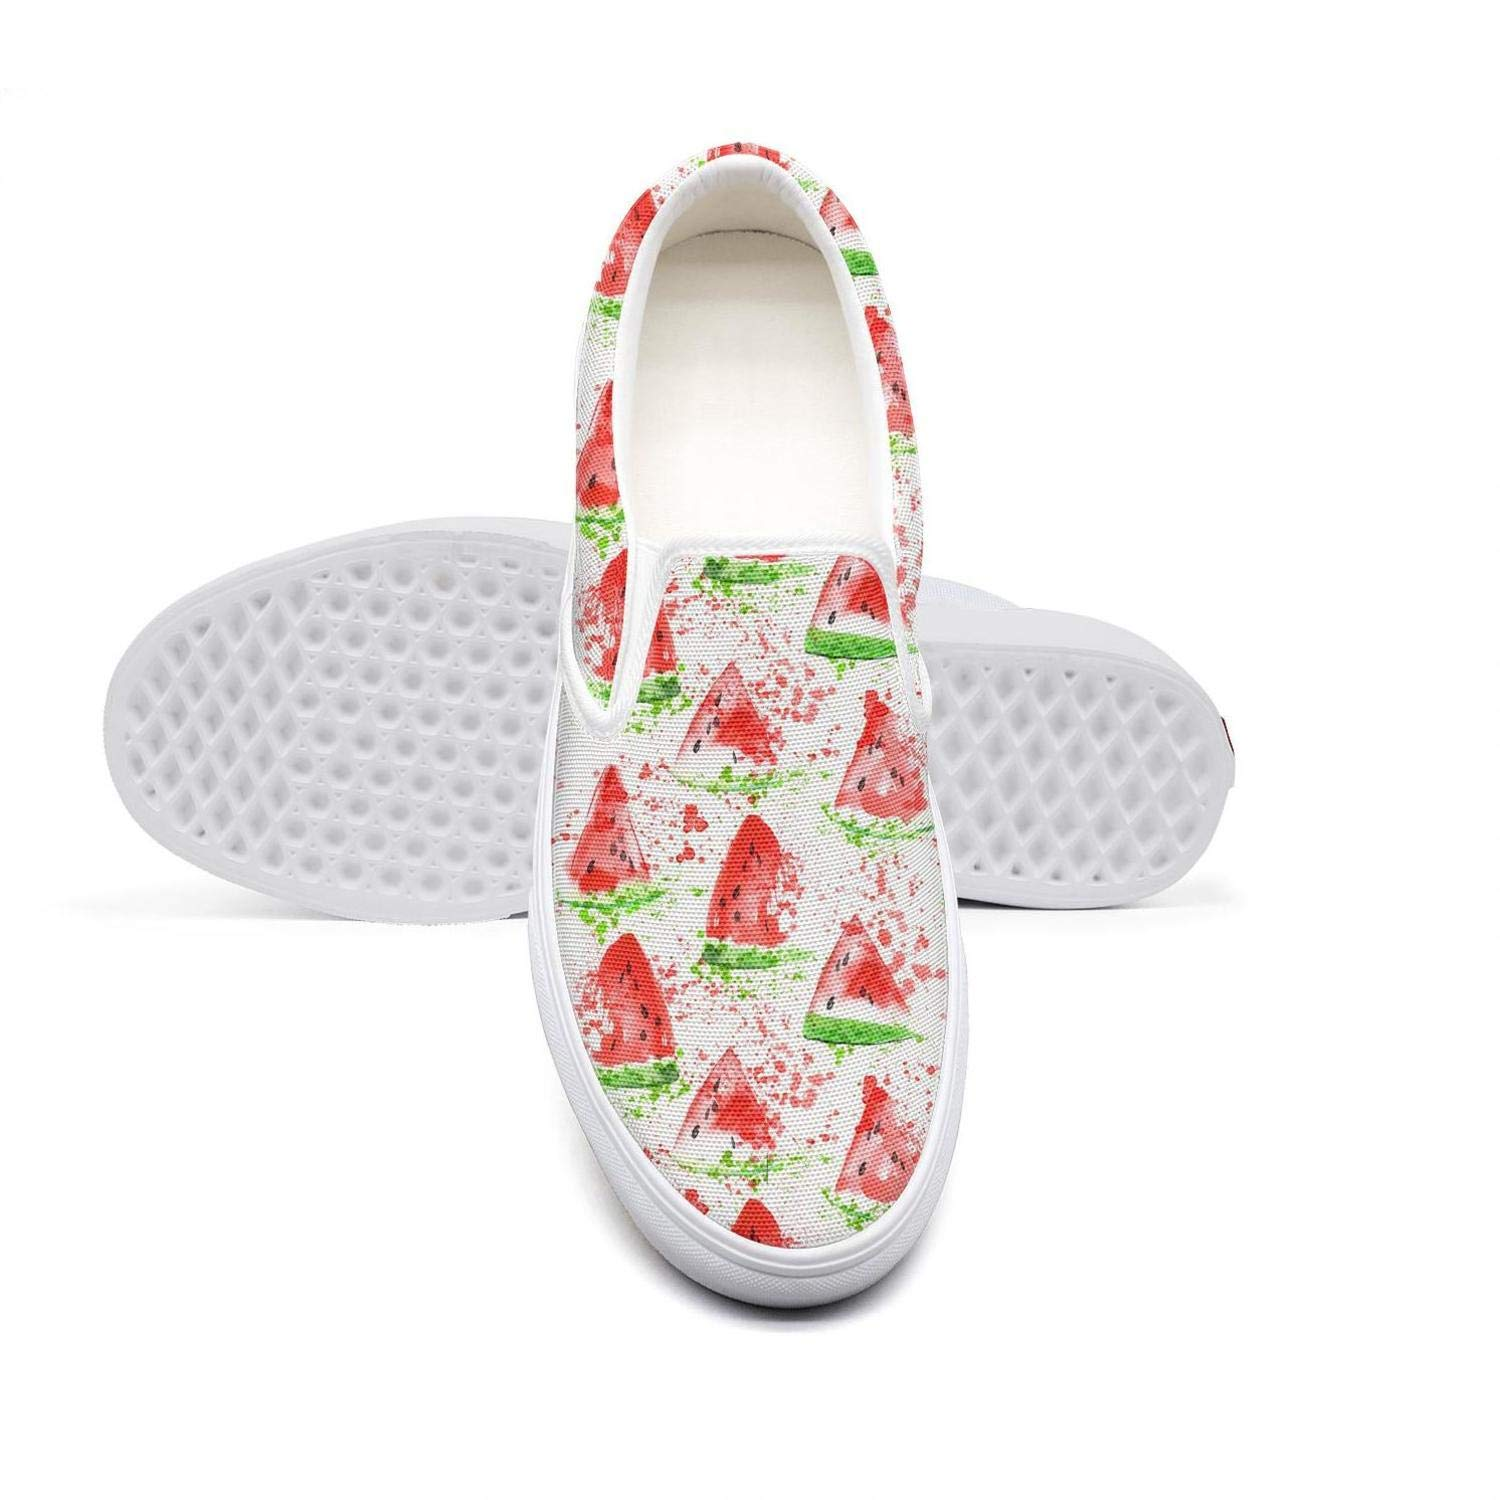 Womens Slip-on Loafer Cool Summer Watermelon Gifts Green Casual Sneaker Flat Walking Shoes Breathable